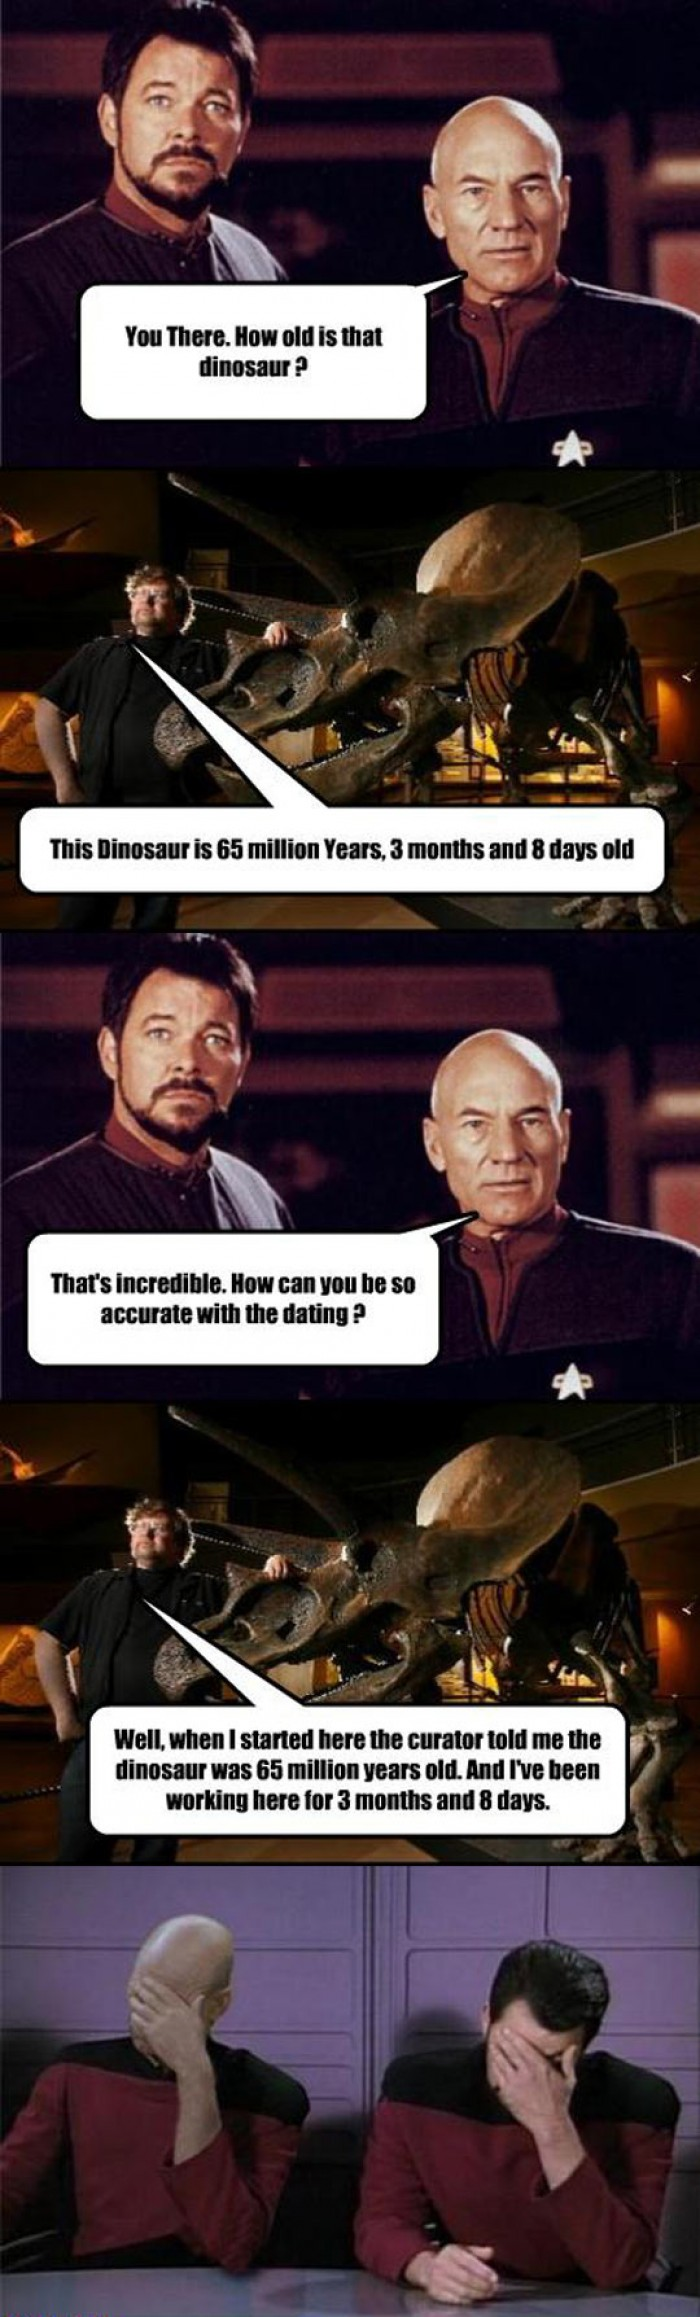 How Old Is That Dinosaur?